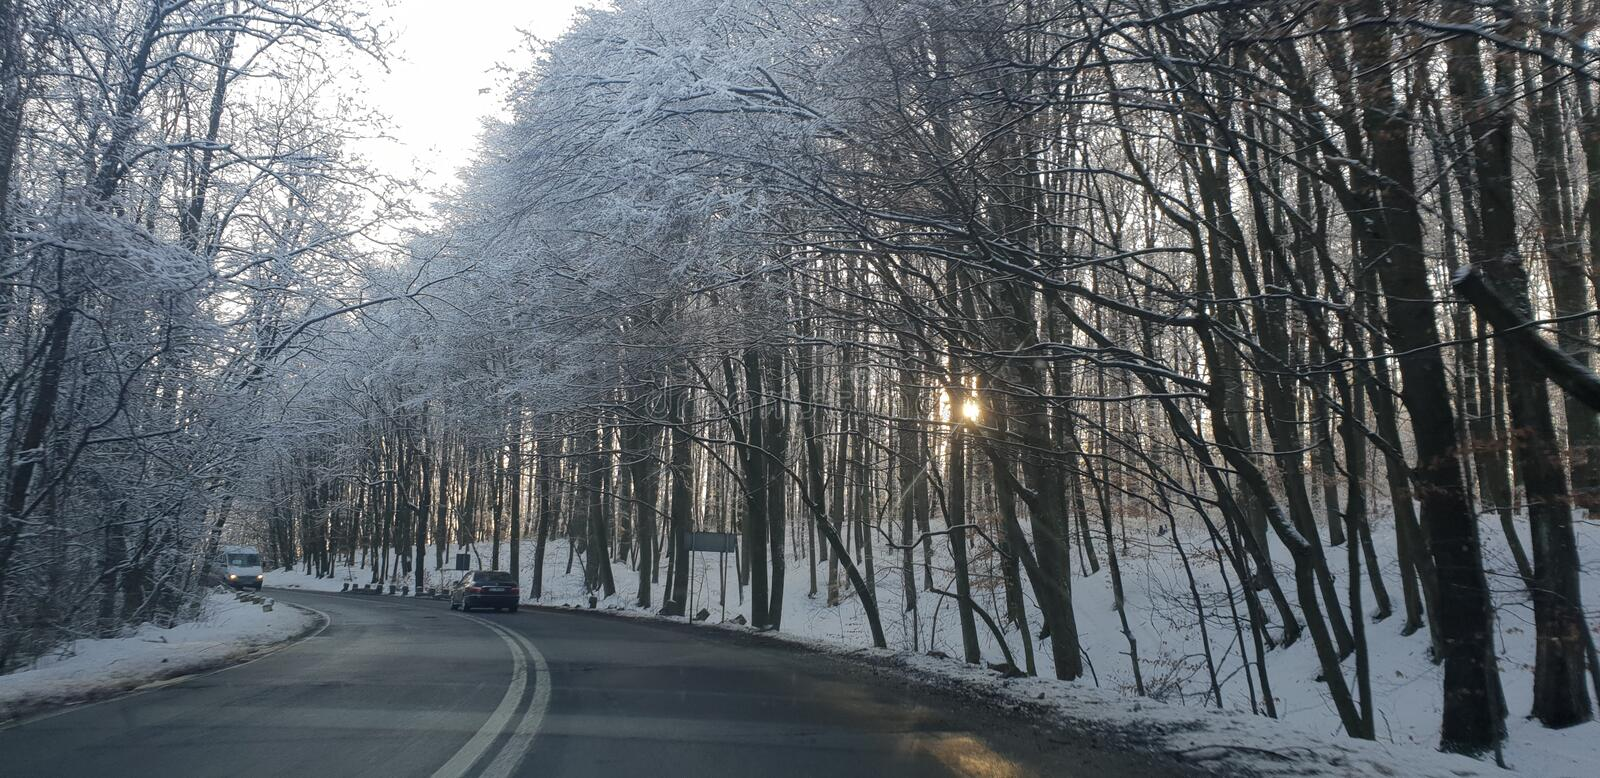 Winter road in early 2019 from cluj county to timisoara city highway  and rural road. Winter road early 2019 clun cluj county timisoara city highway rural stock photo